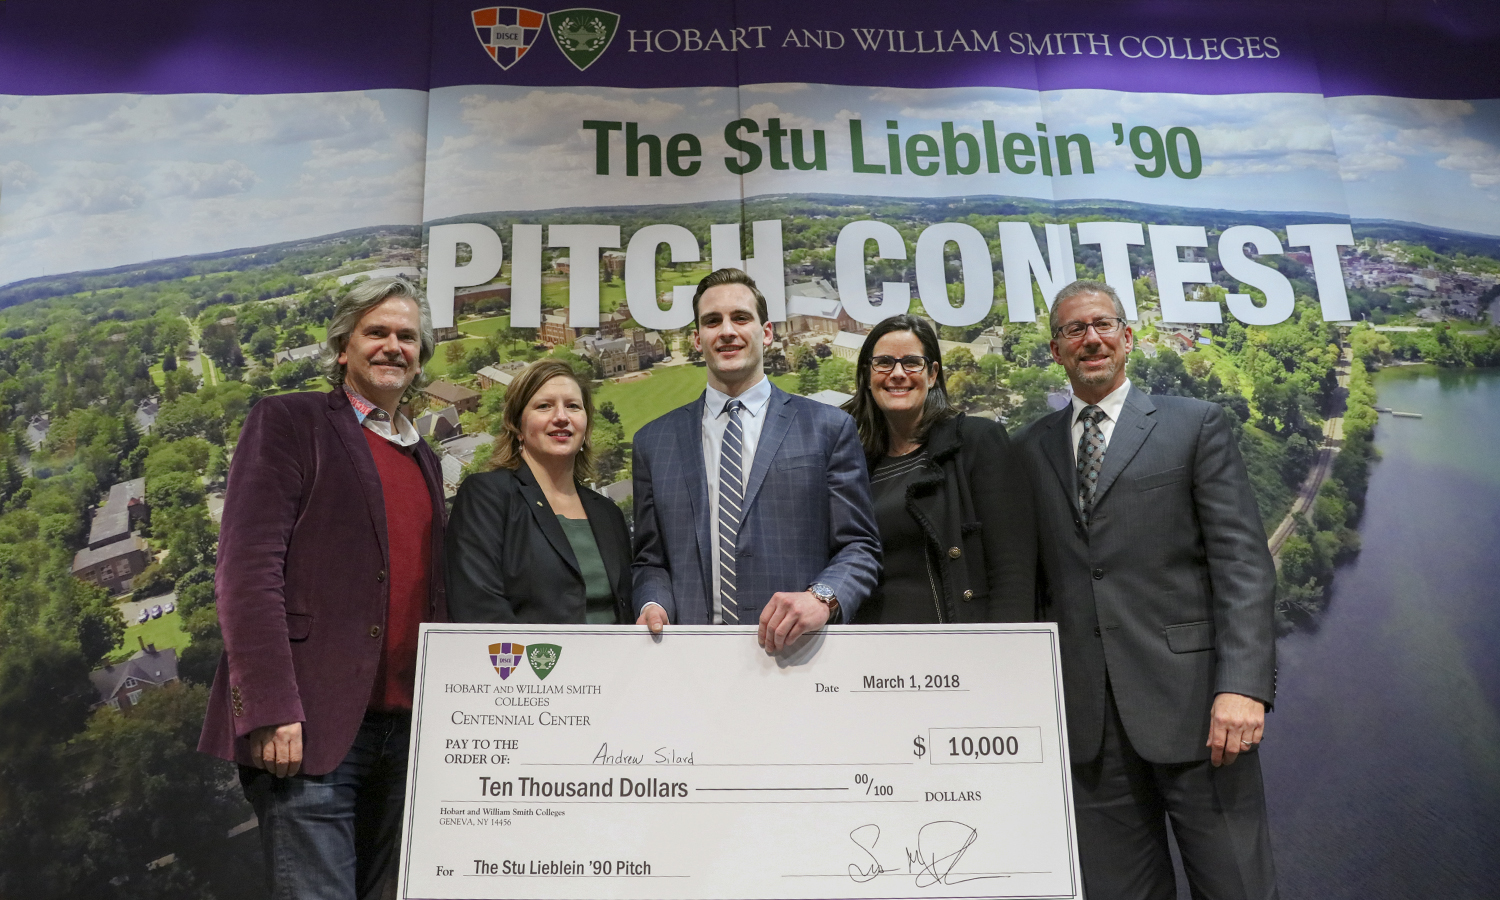 David A. Kaplan '83, co-founder and CEO of global video platform PureSolo and Murge LLC; Julie Bazan '93, local business owner and former financial advisor; 2018 Stu Lieblein '90 Pitch Contest winner Andrew Silard '18; Suzanne B. Rutstein '95, owner of juju Lifestyle Fashions; and Michael J. Miller '83, P'09, president of Microbiology Consultants gather for a photo.